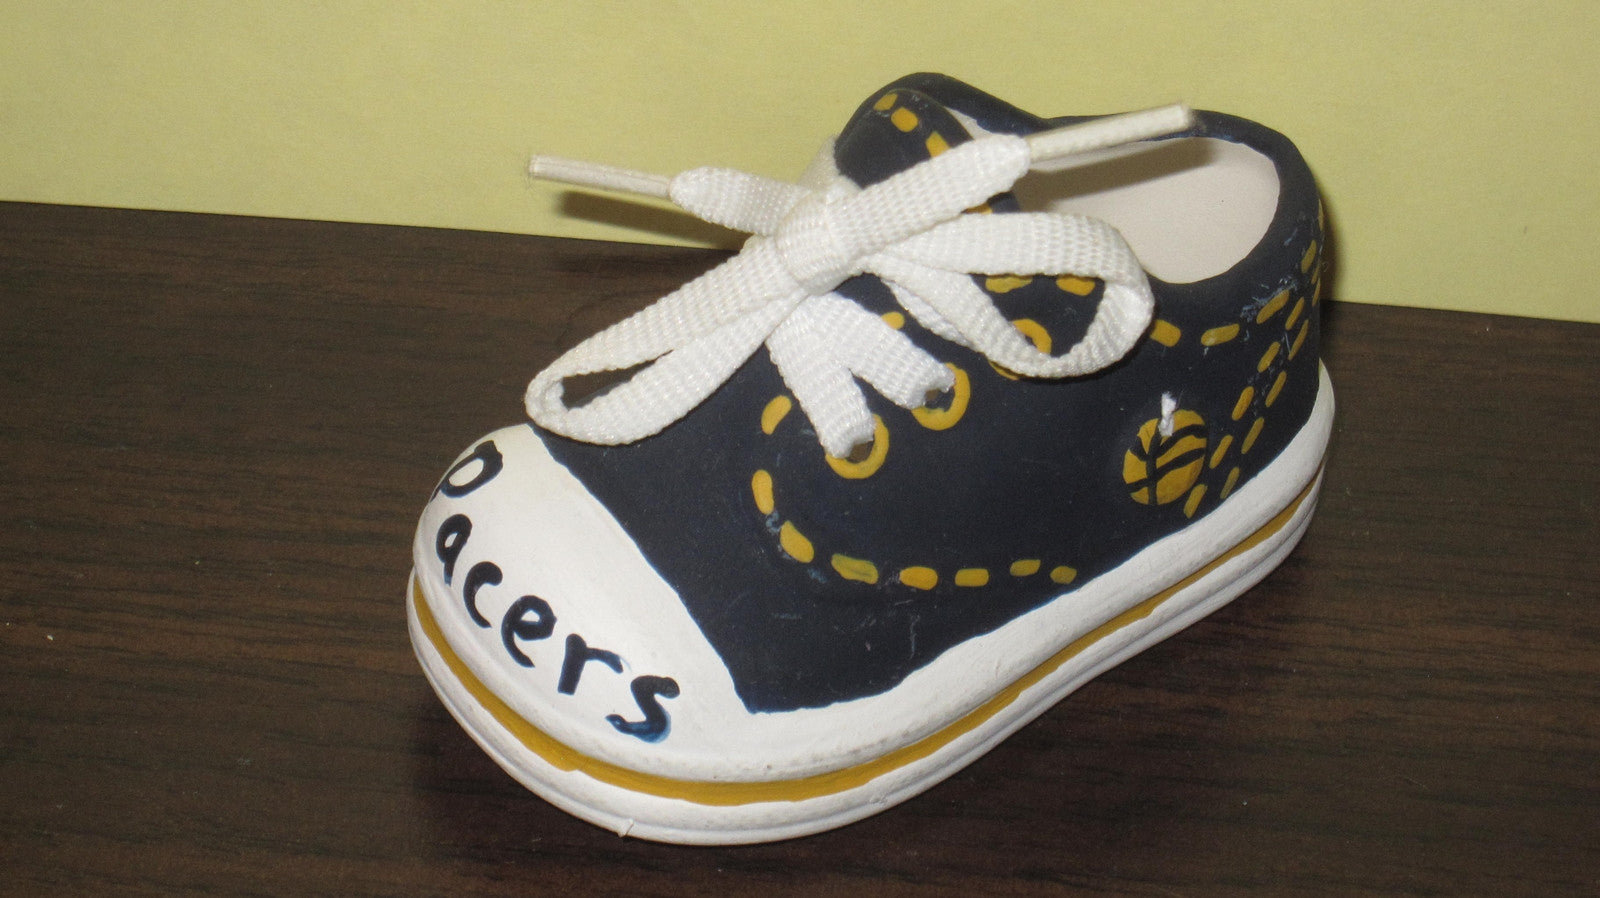 Indiana Pacers Hand Painted Ceramic Mini Basketball Sneaker - Vintage Indy Sports